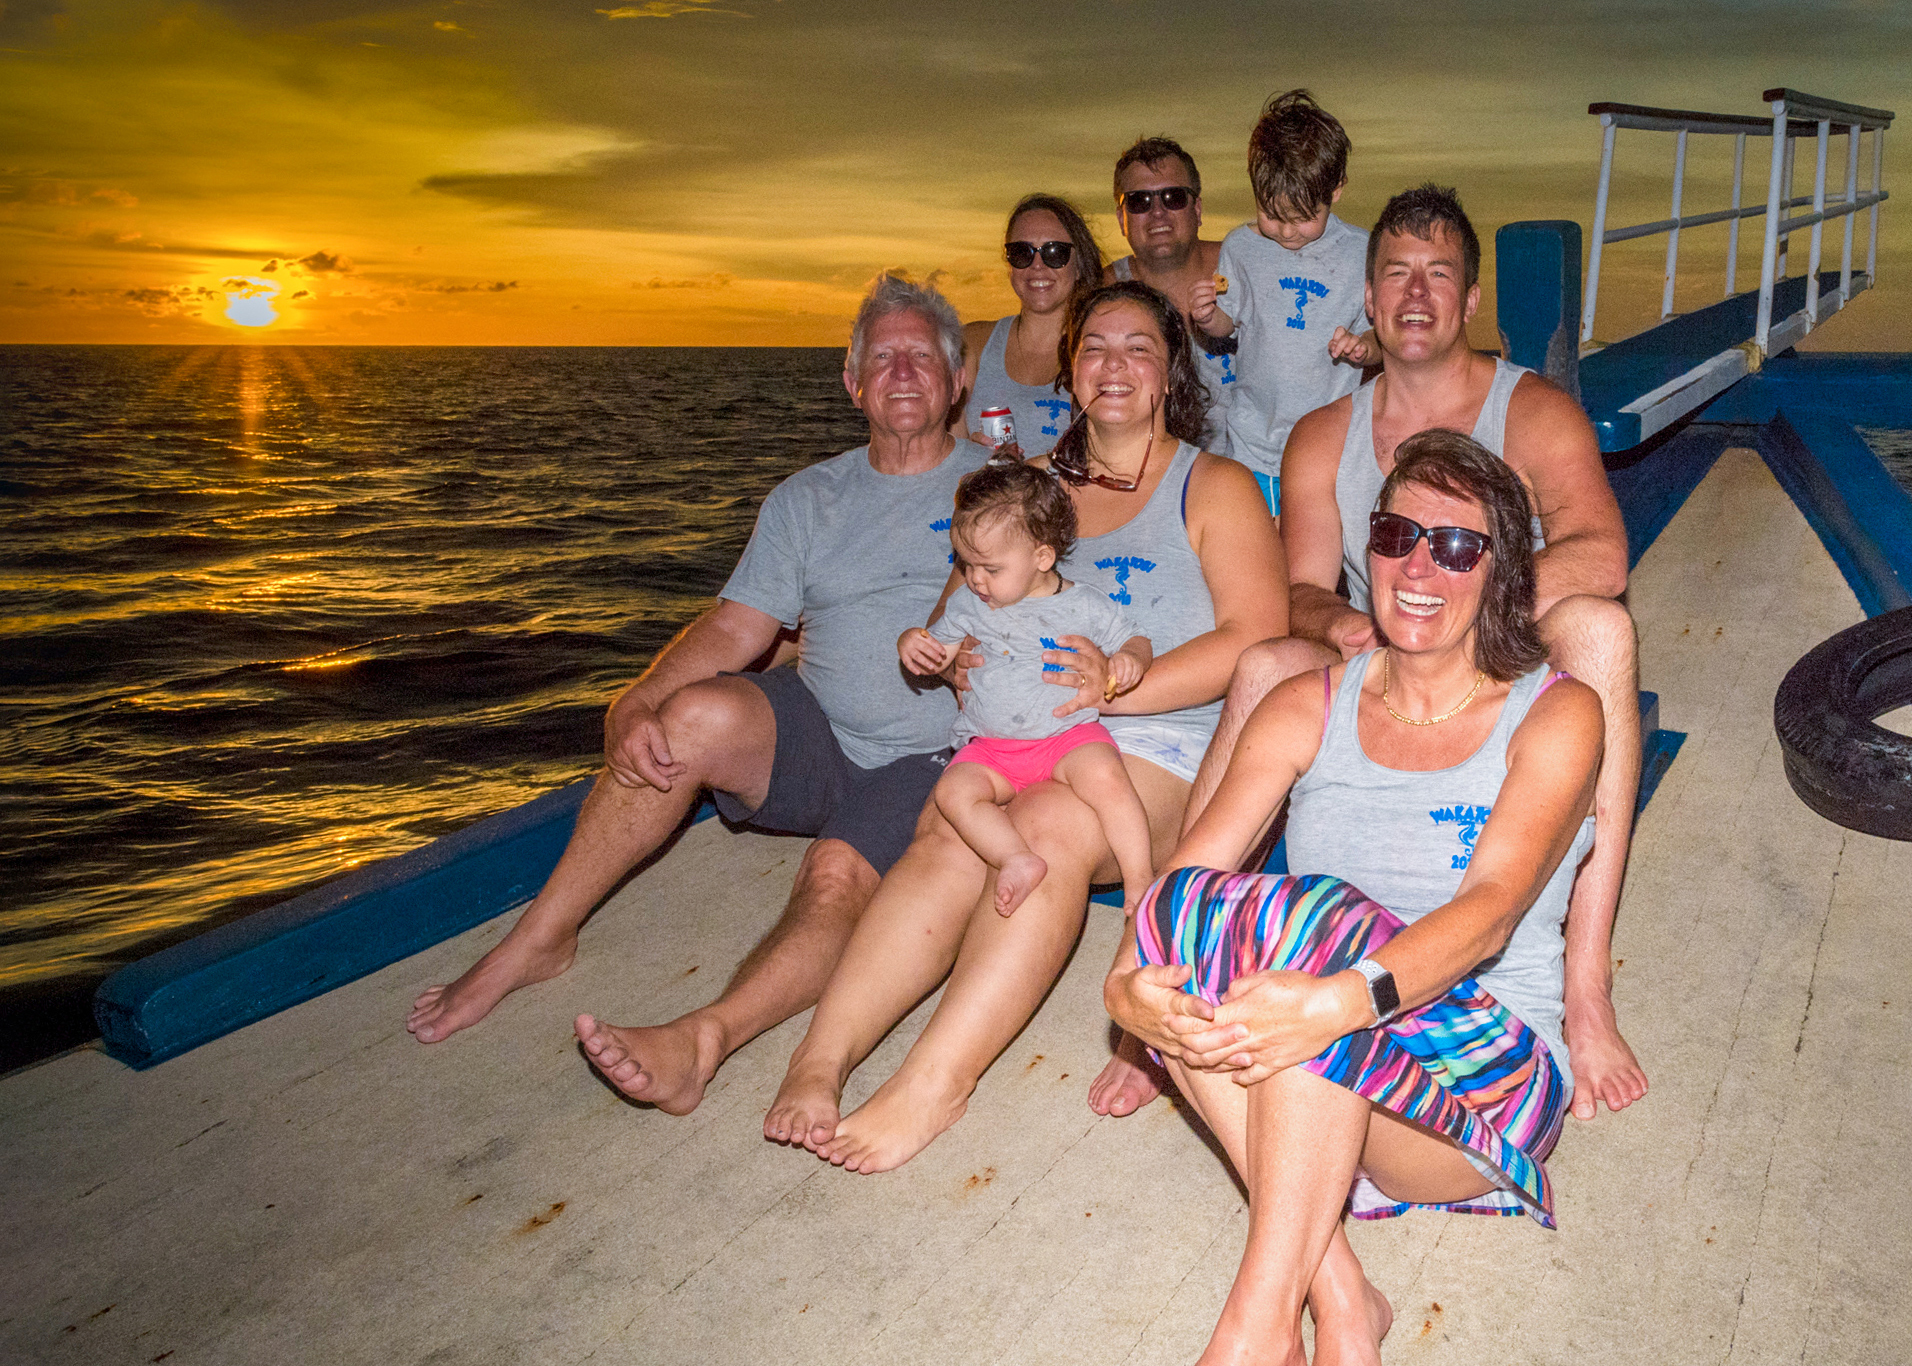 """The Lochries have made plans to revisit Wakatobi in 2022 and are """"counting the days"""" until their return. This photo was taken by Wakatobi staff."""